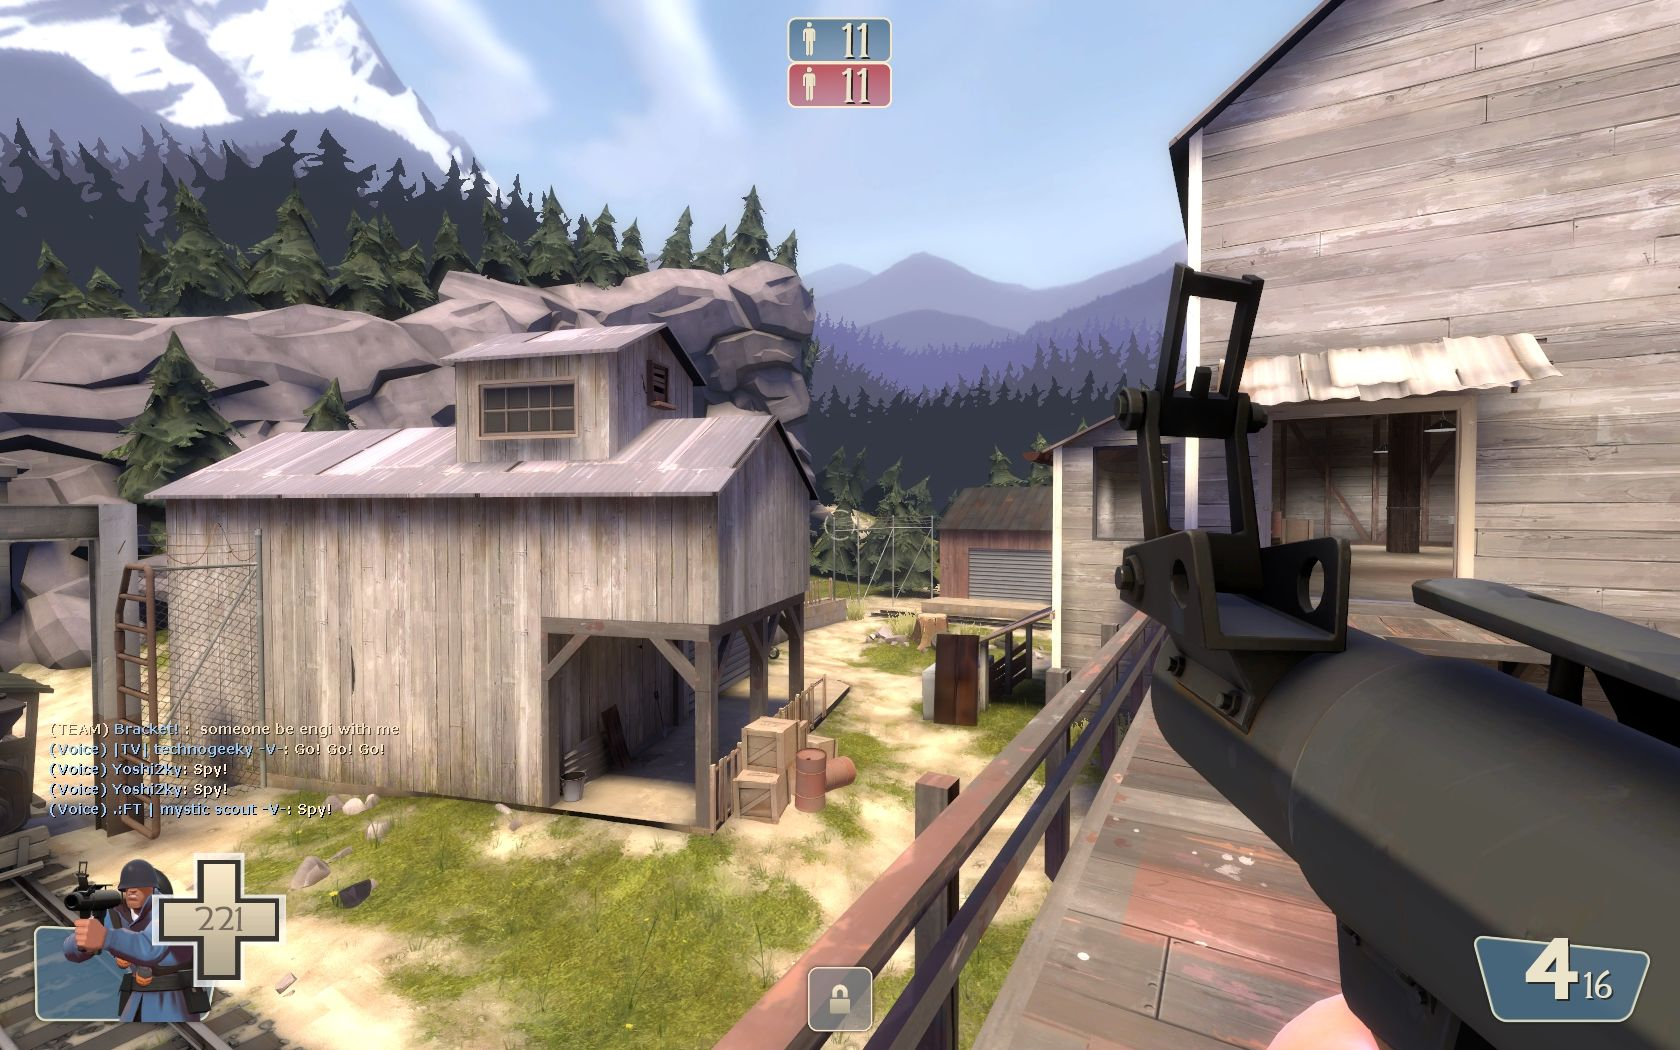 Team Fortress 2 Windows The lumberyard map adds a new environment to the game.